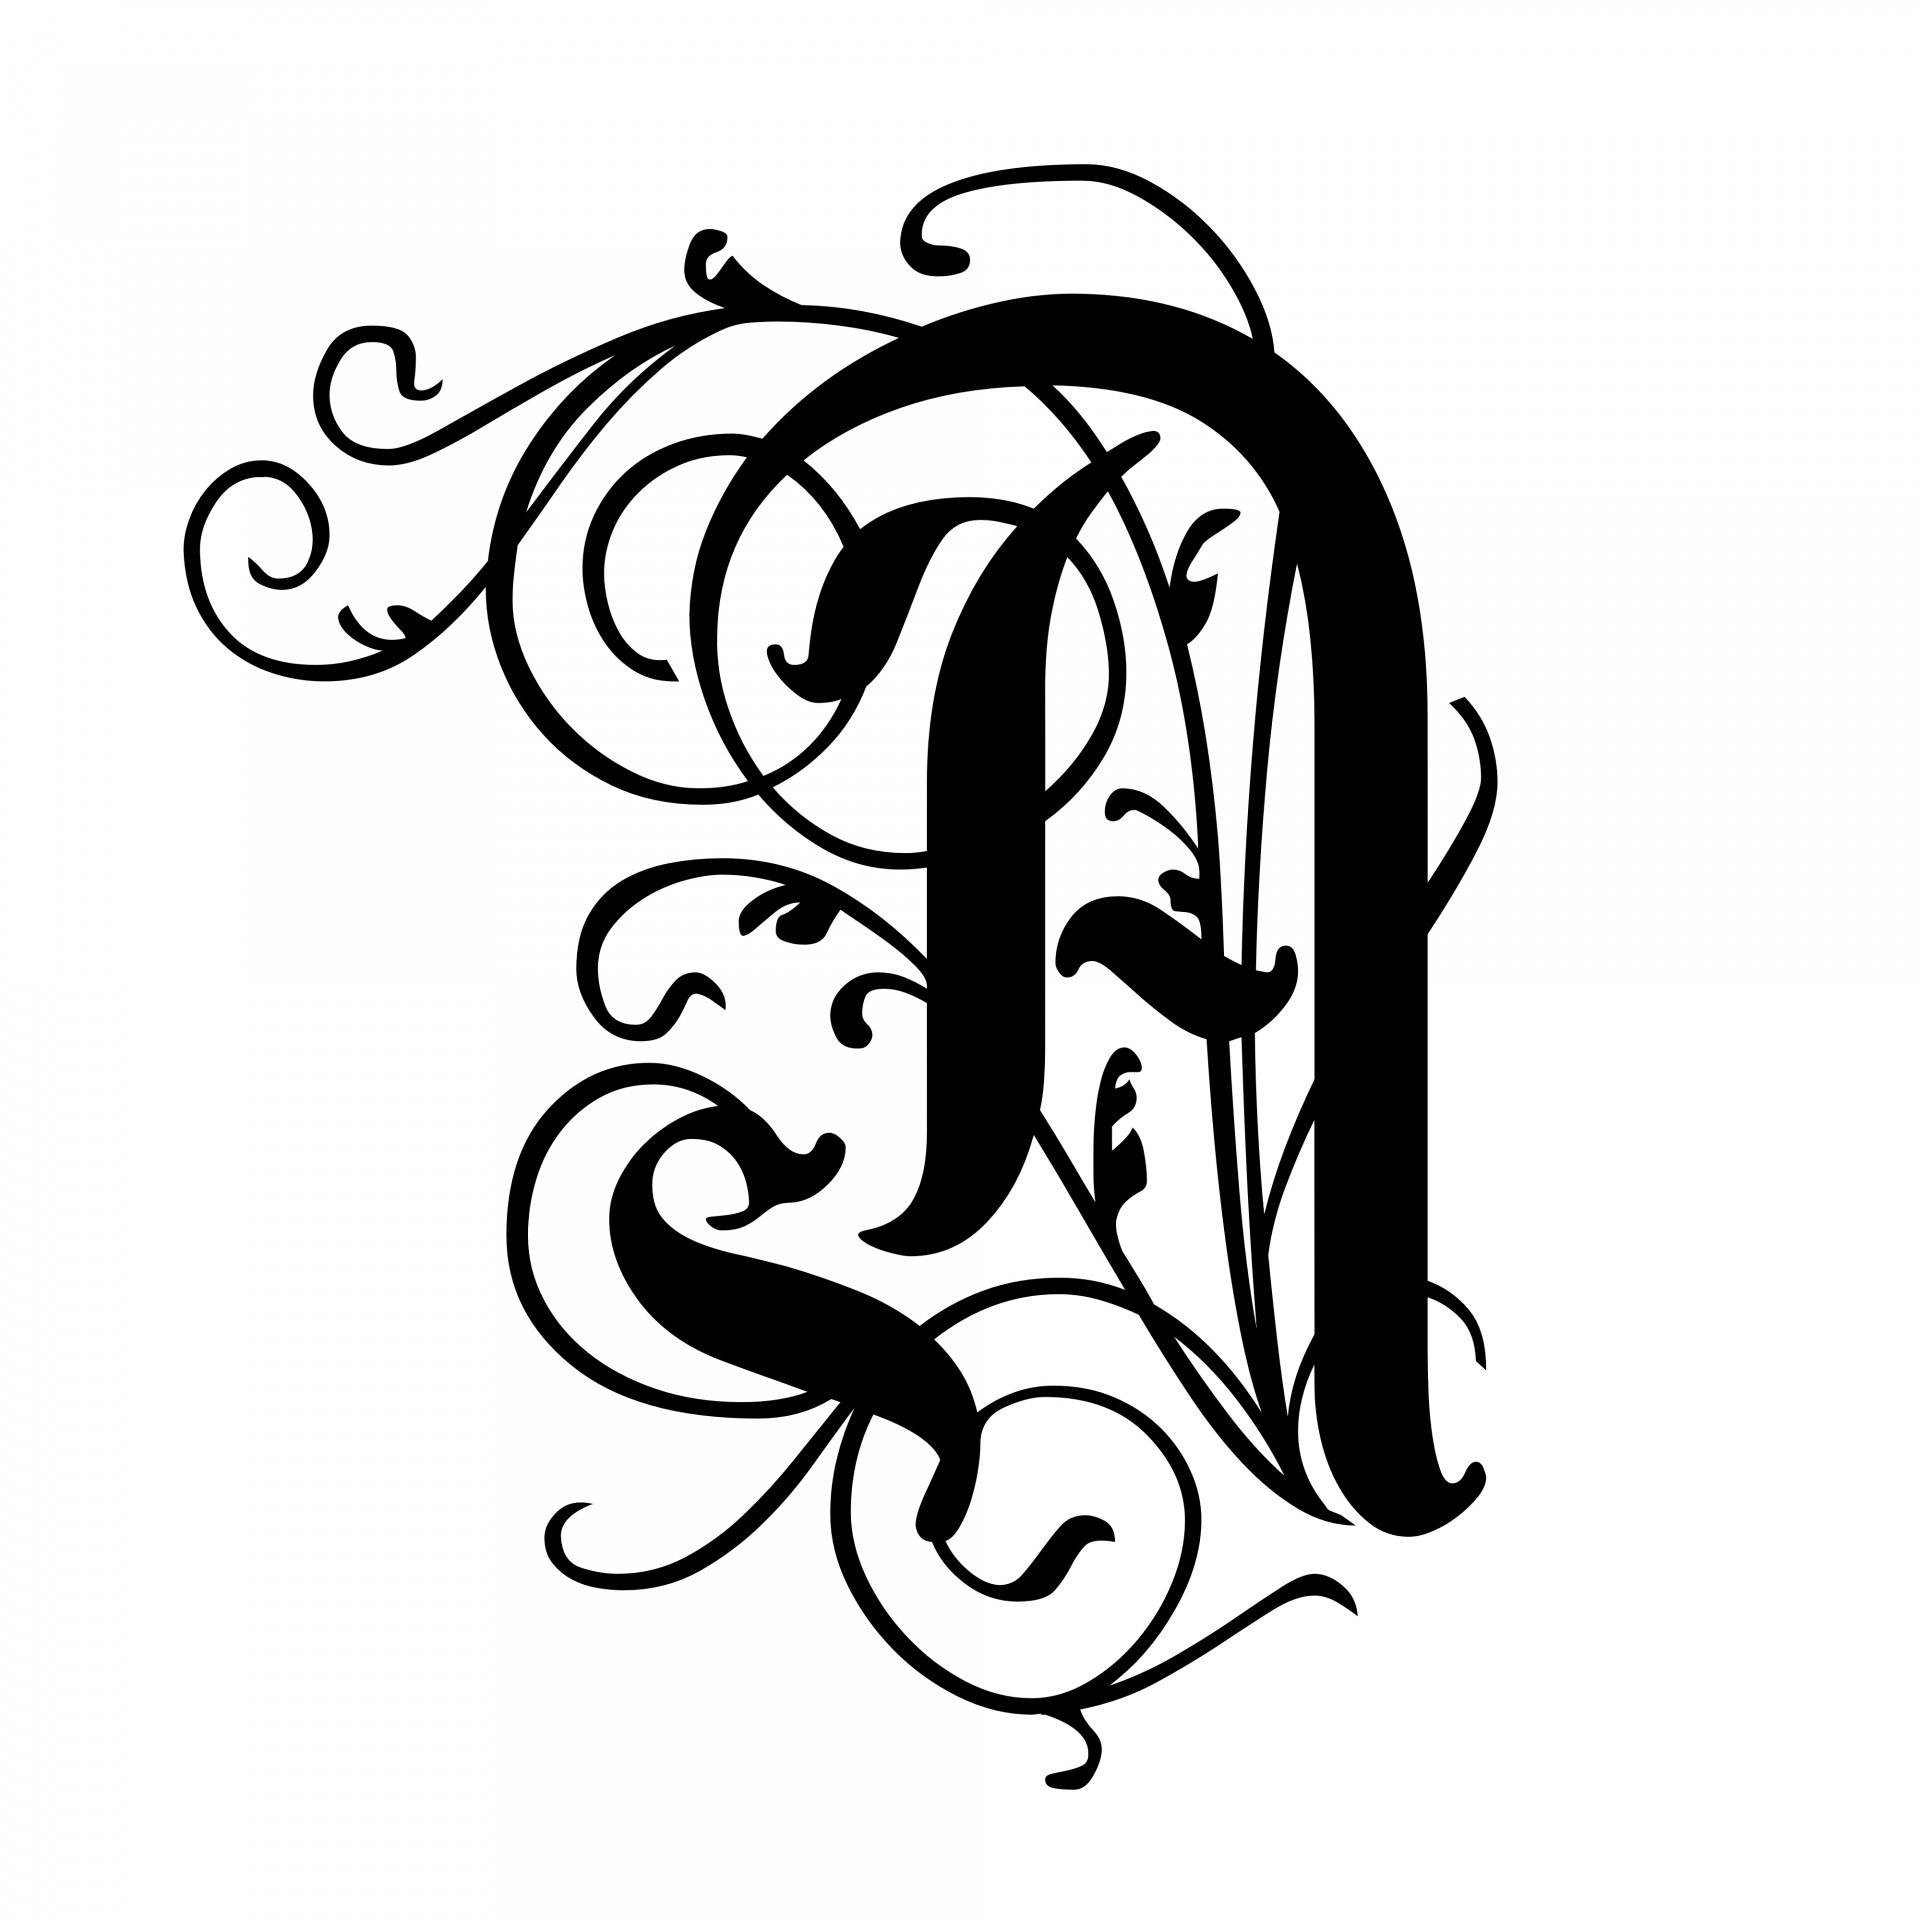 Decorative Letter A.Deco Decorative Black Letter A Silhouette Free Image From